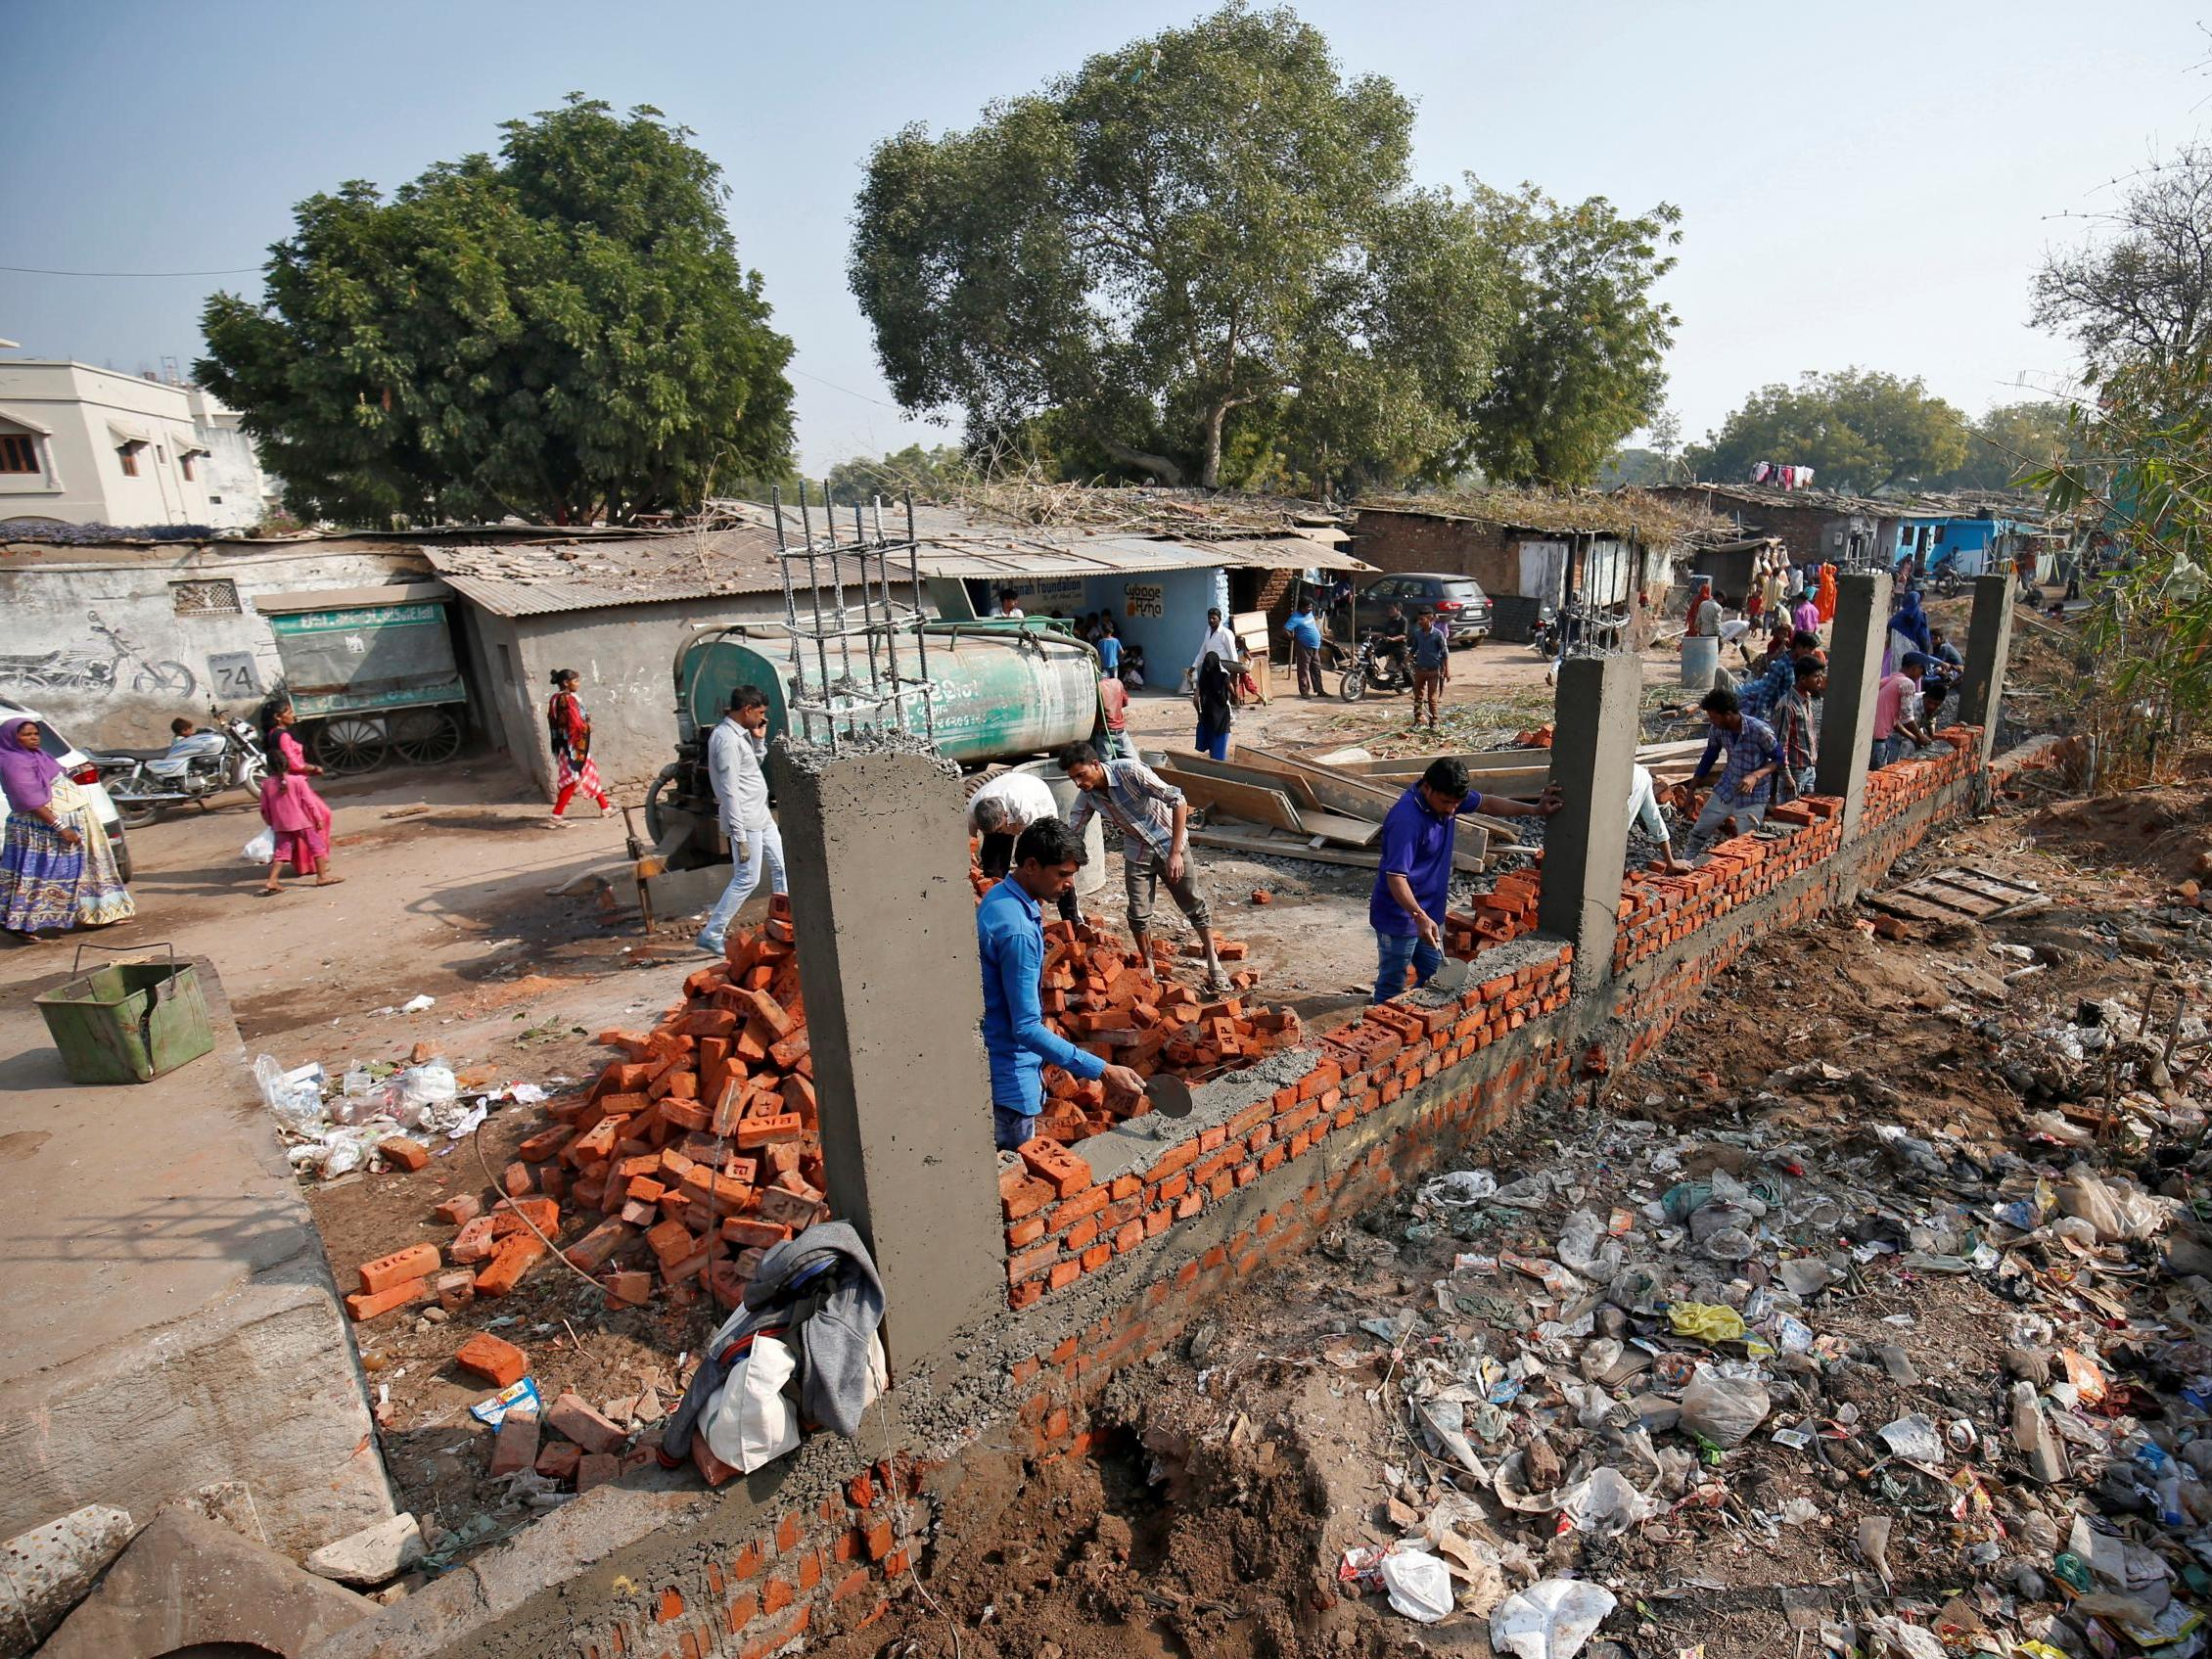 India building wall 'to block slums from Trump's sight' during visit